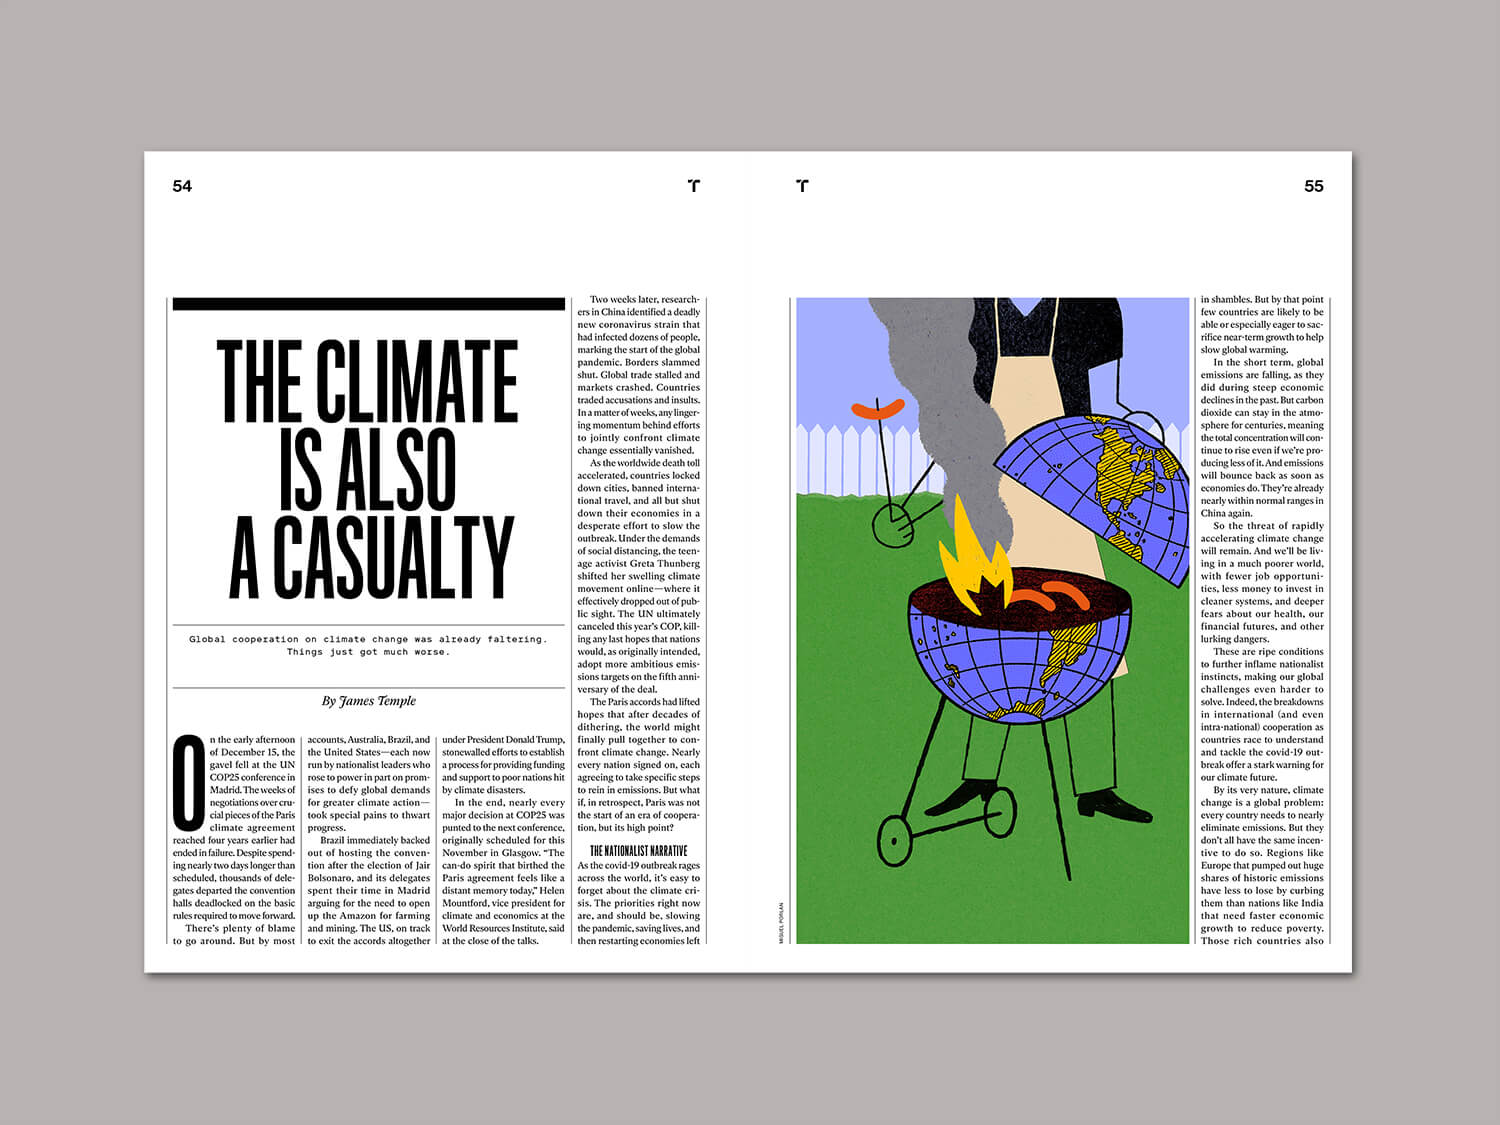 miguel porlan, illustration, mit technology review, climate, climate crisis